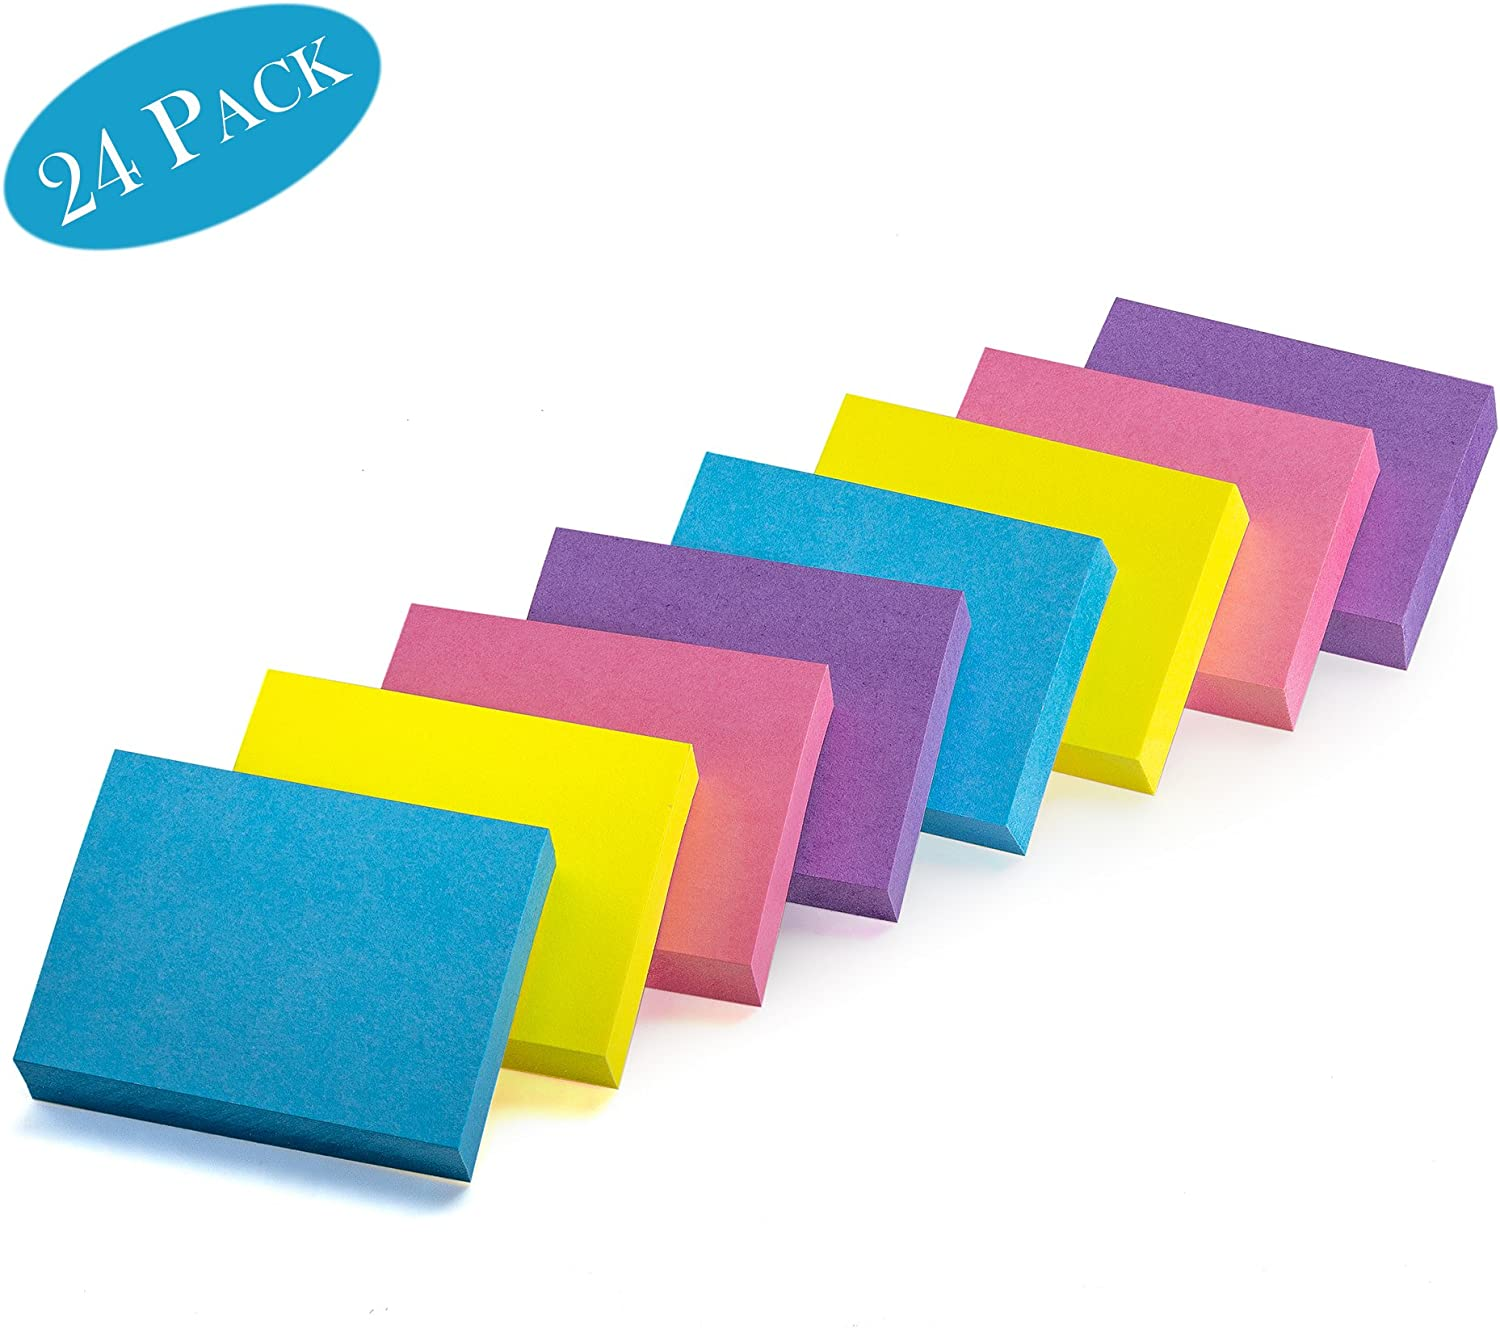 24 Pads Per Pack Extreme 100 Sheets Per Pad Premium Quality School Mini Self-Stick Memo Notes 1 /½ X 2 Inches Self Adhesive for Home Office Sticky Notes